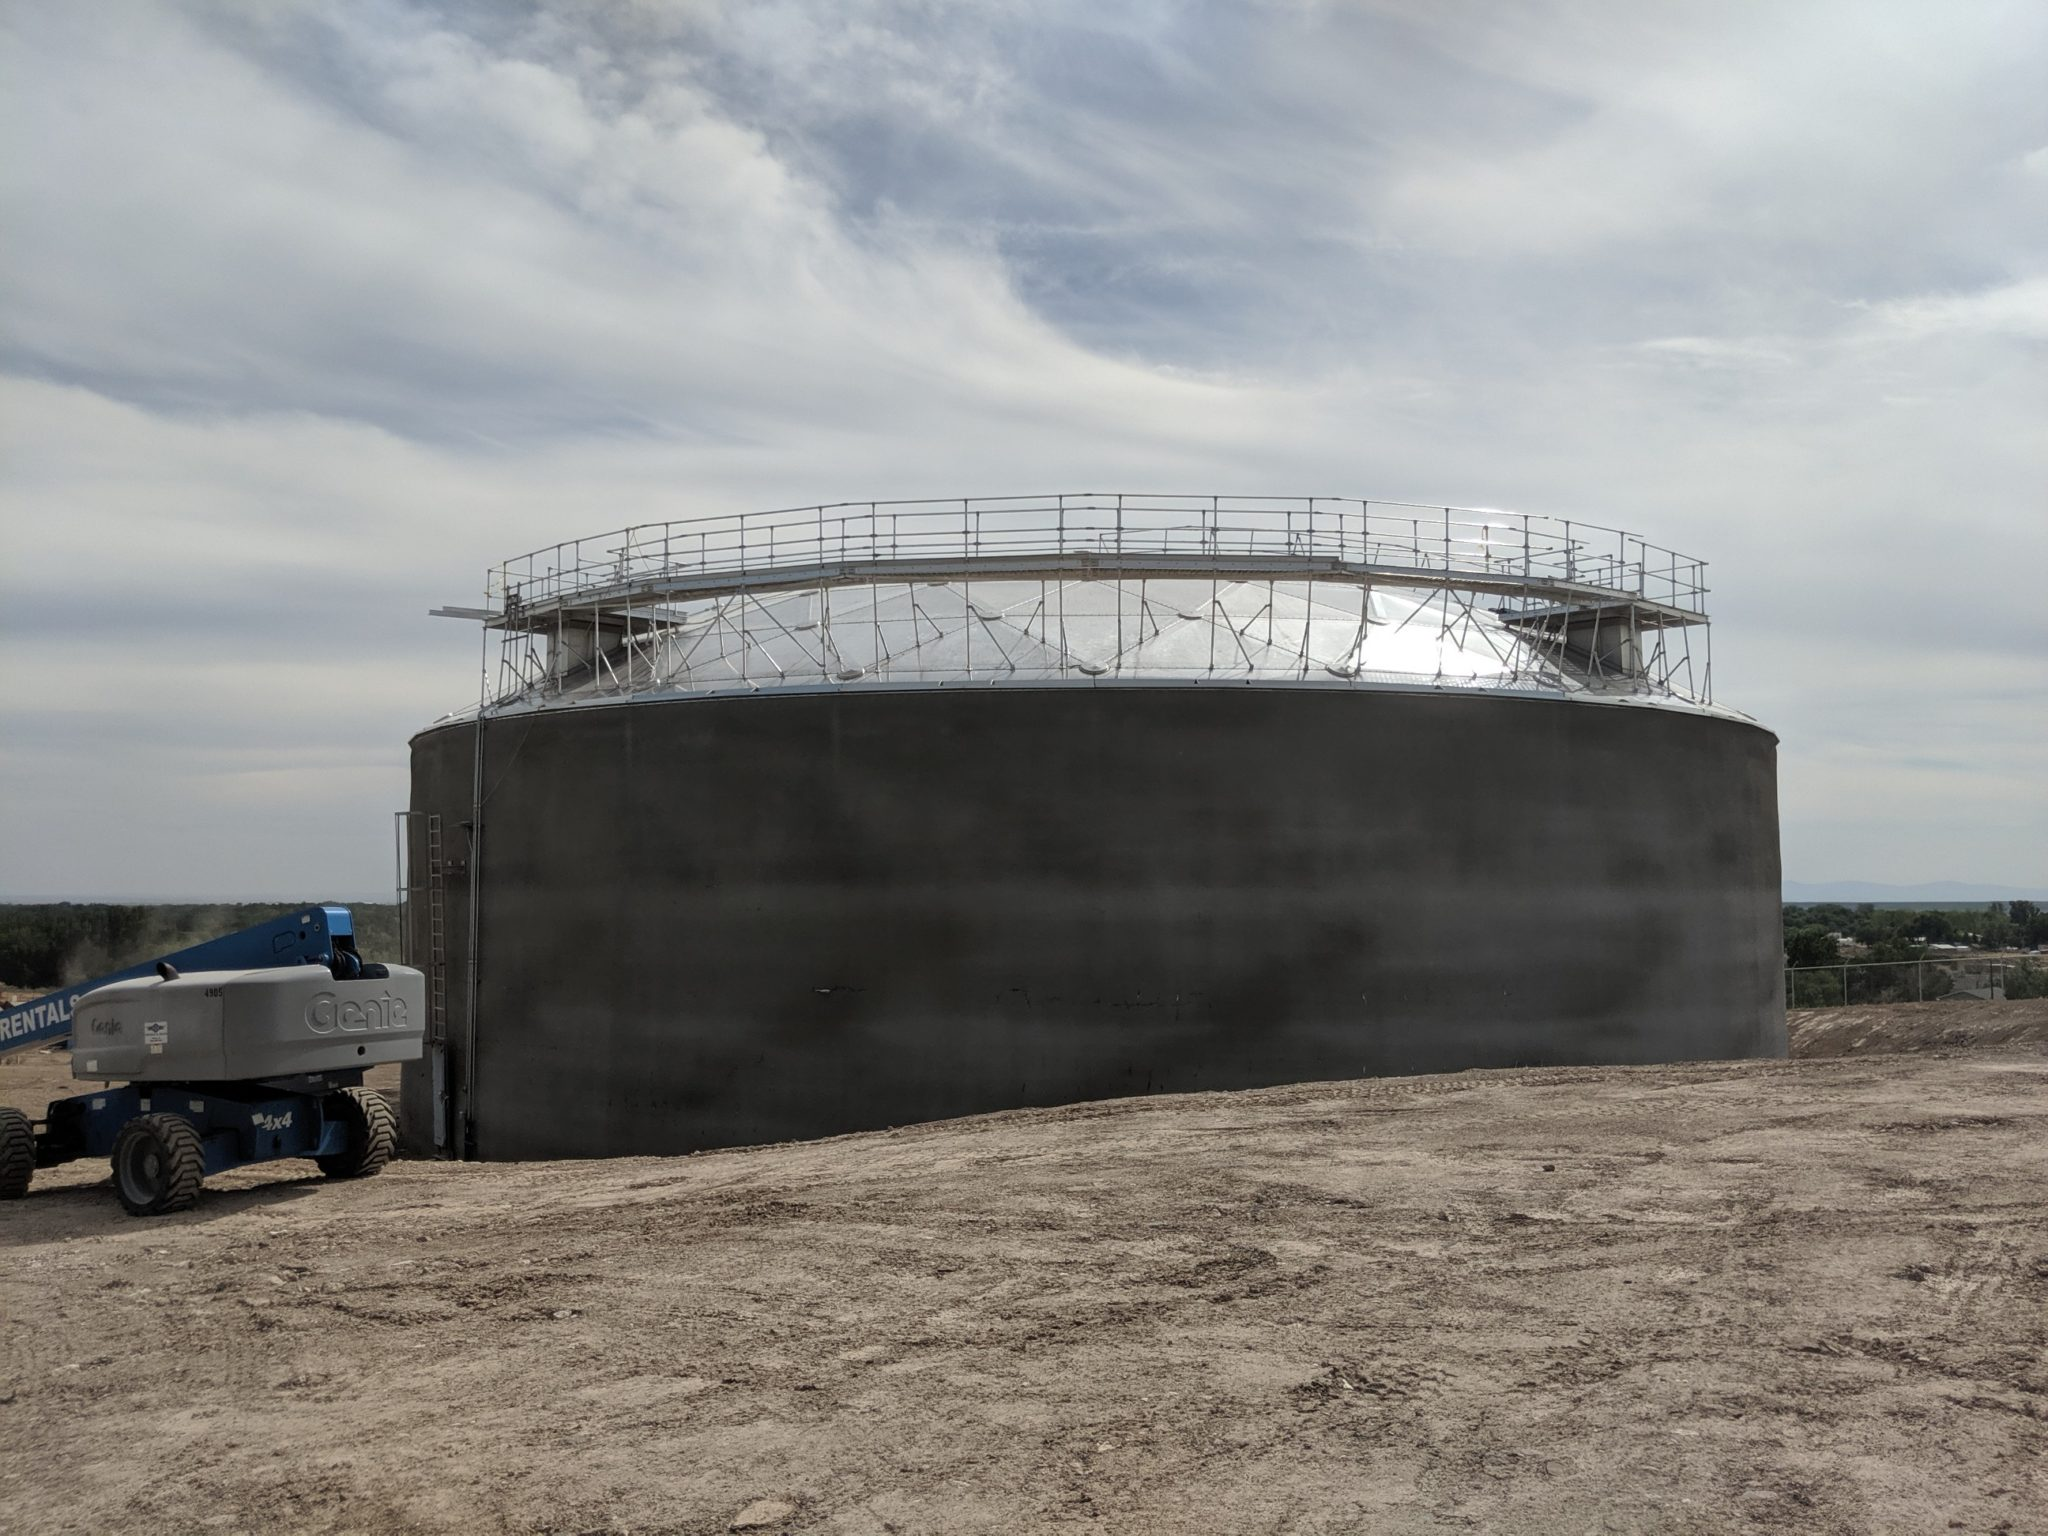 A partially buried concrete water storage tank with an aluminum geodesic dome with a catwalk